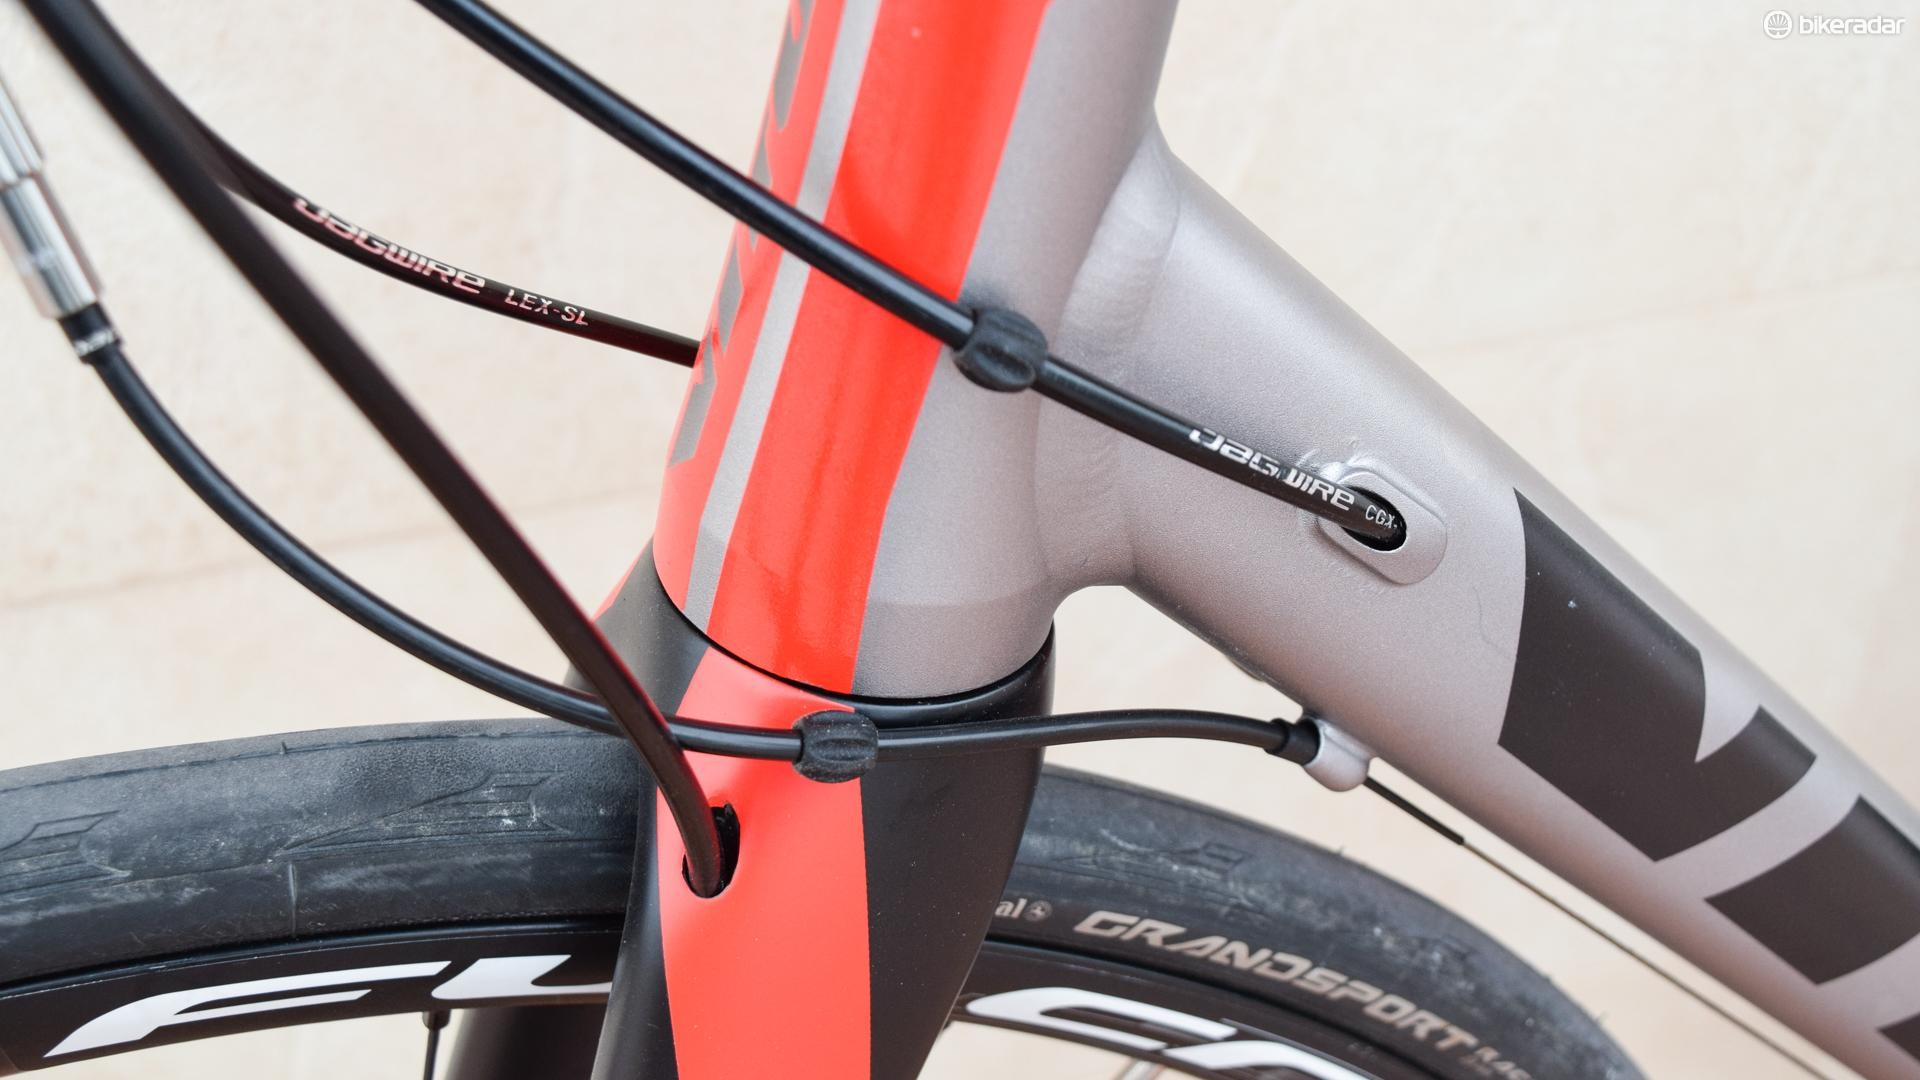 External cables, such as the gear cables here, may not be beautiful, but they are generally trouble free. Could the stops have been better located on this bike though?